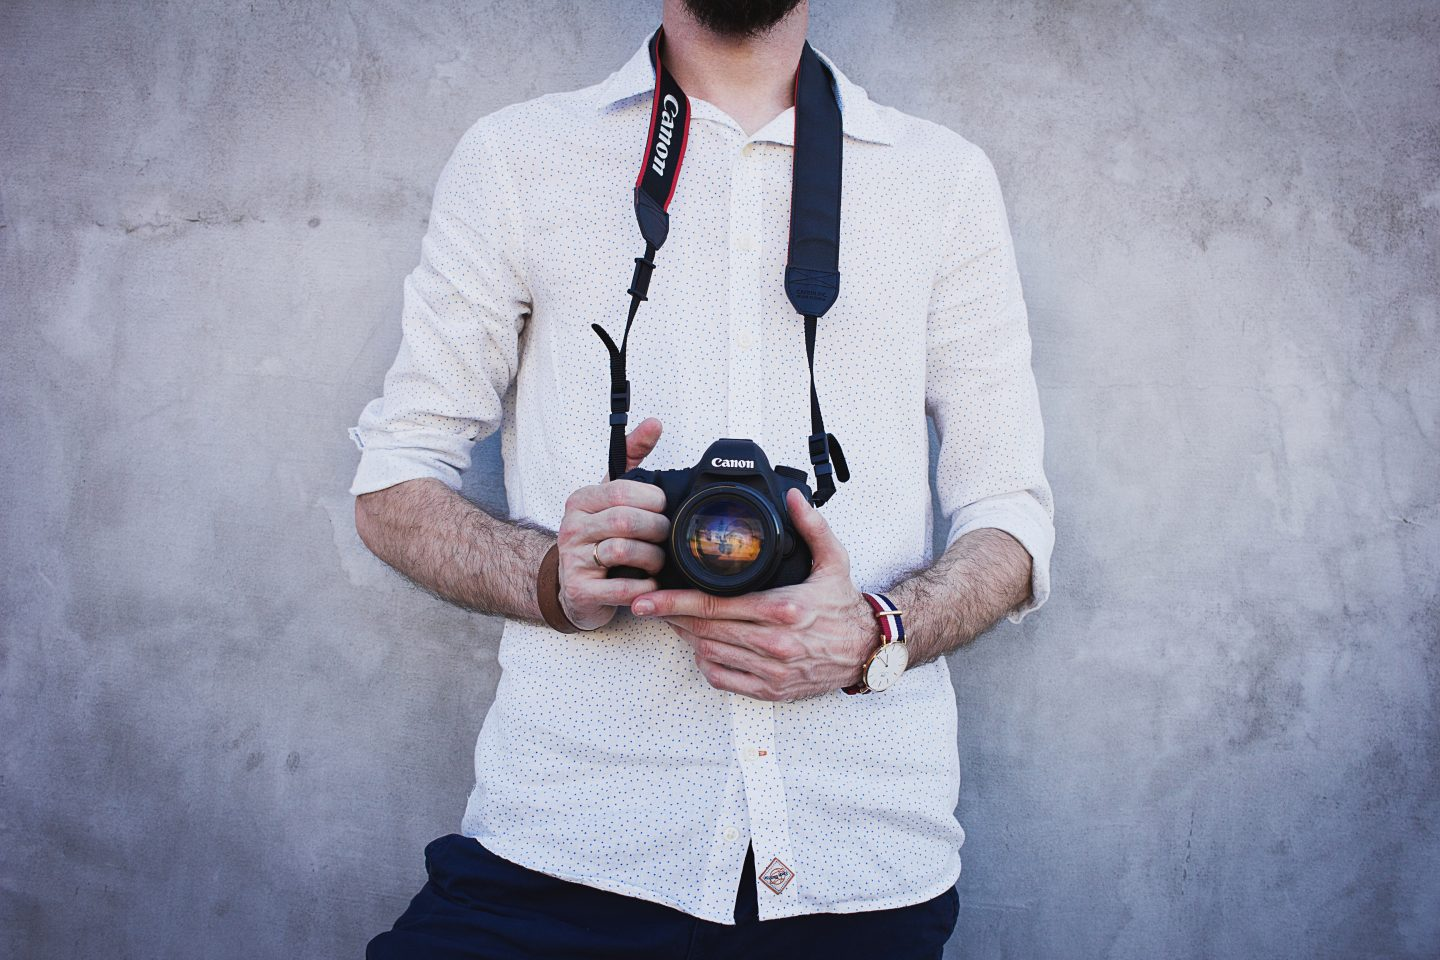 Photographer holding his camera: hire a professional wedding photographer